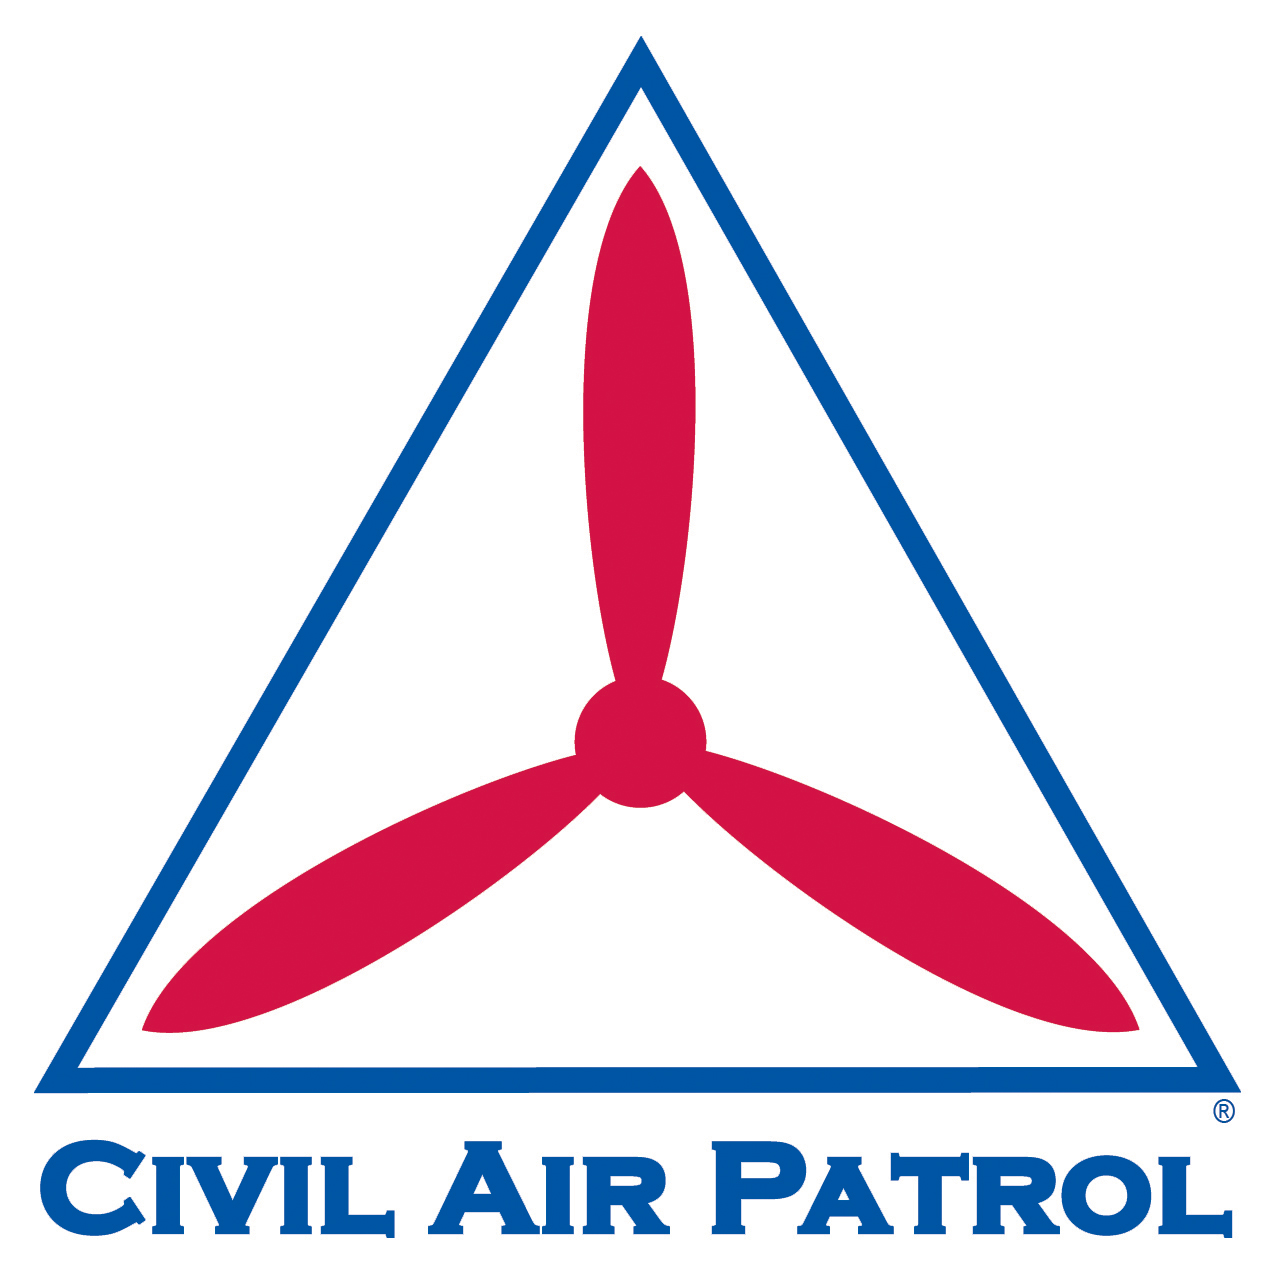 Civil Air Patrol, The United States Air Force Auxiliary